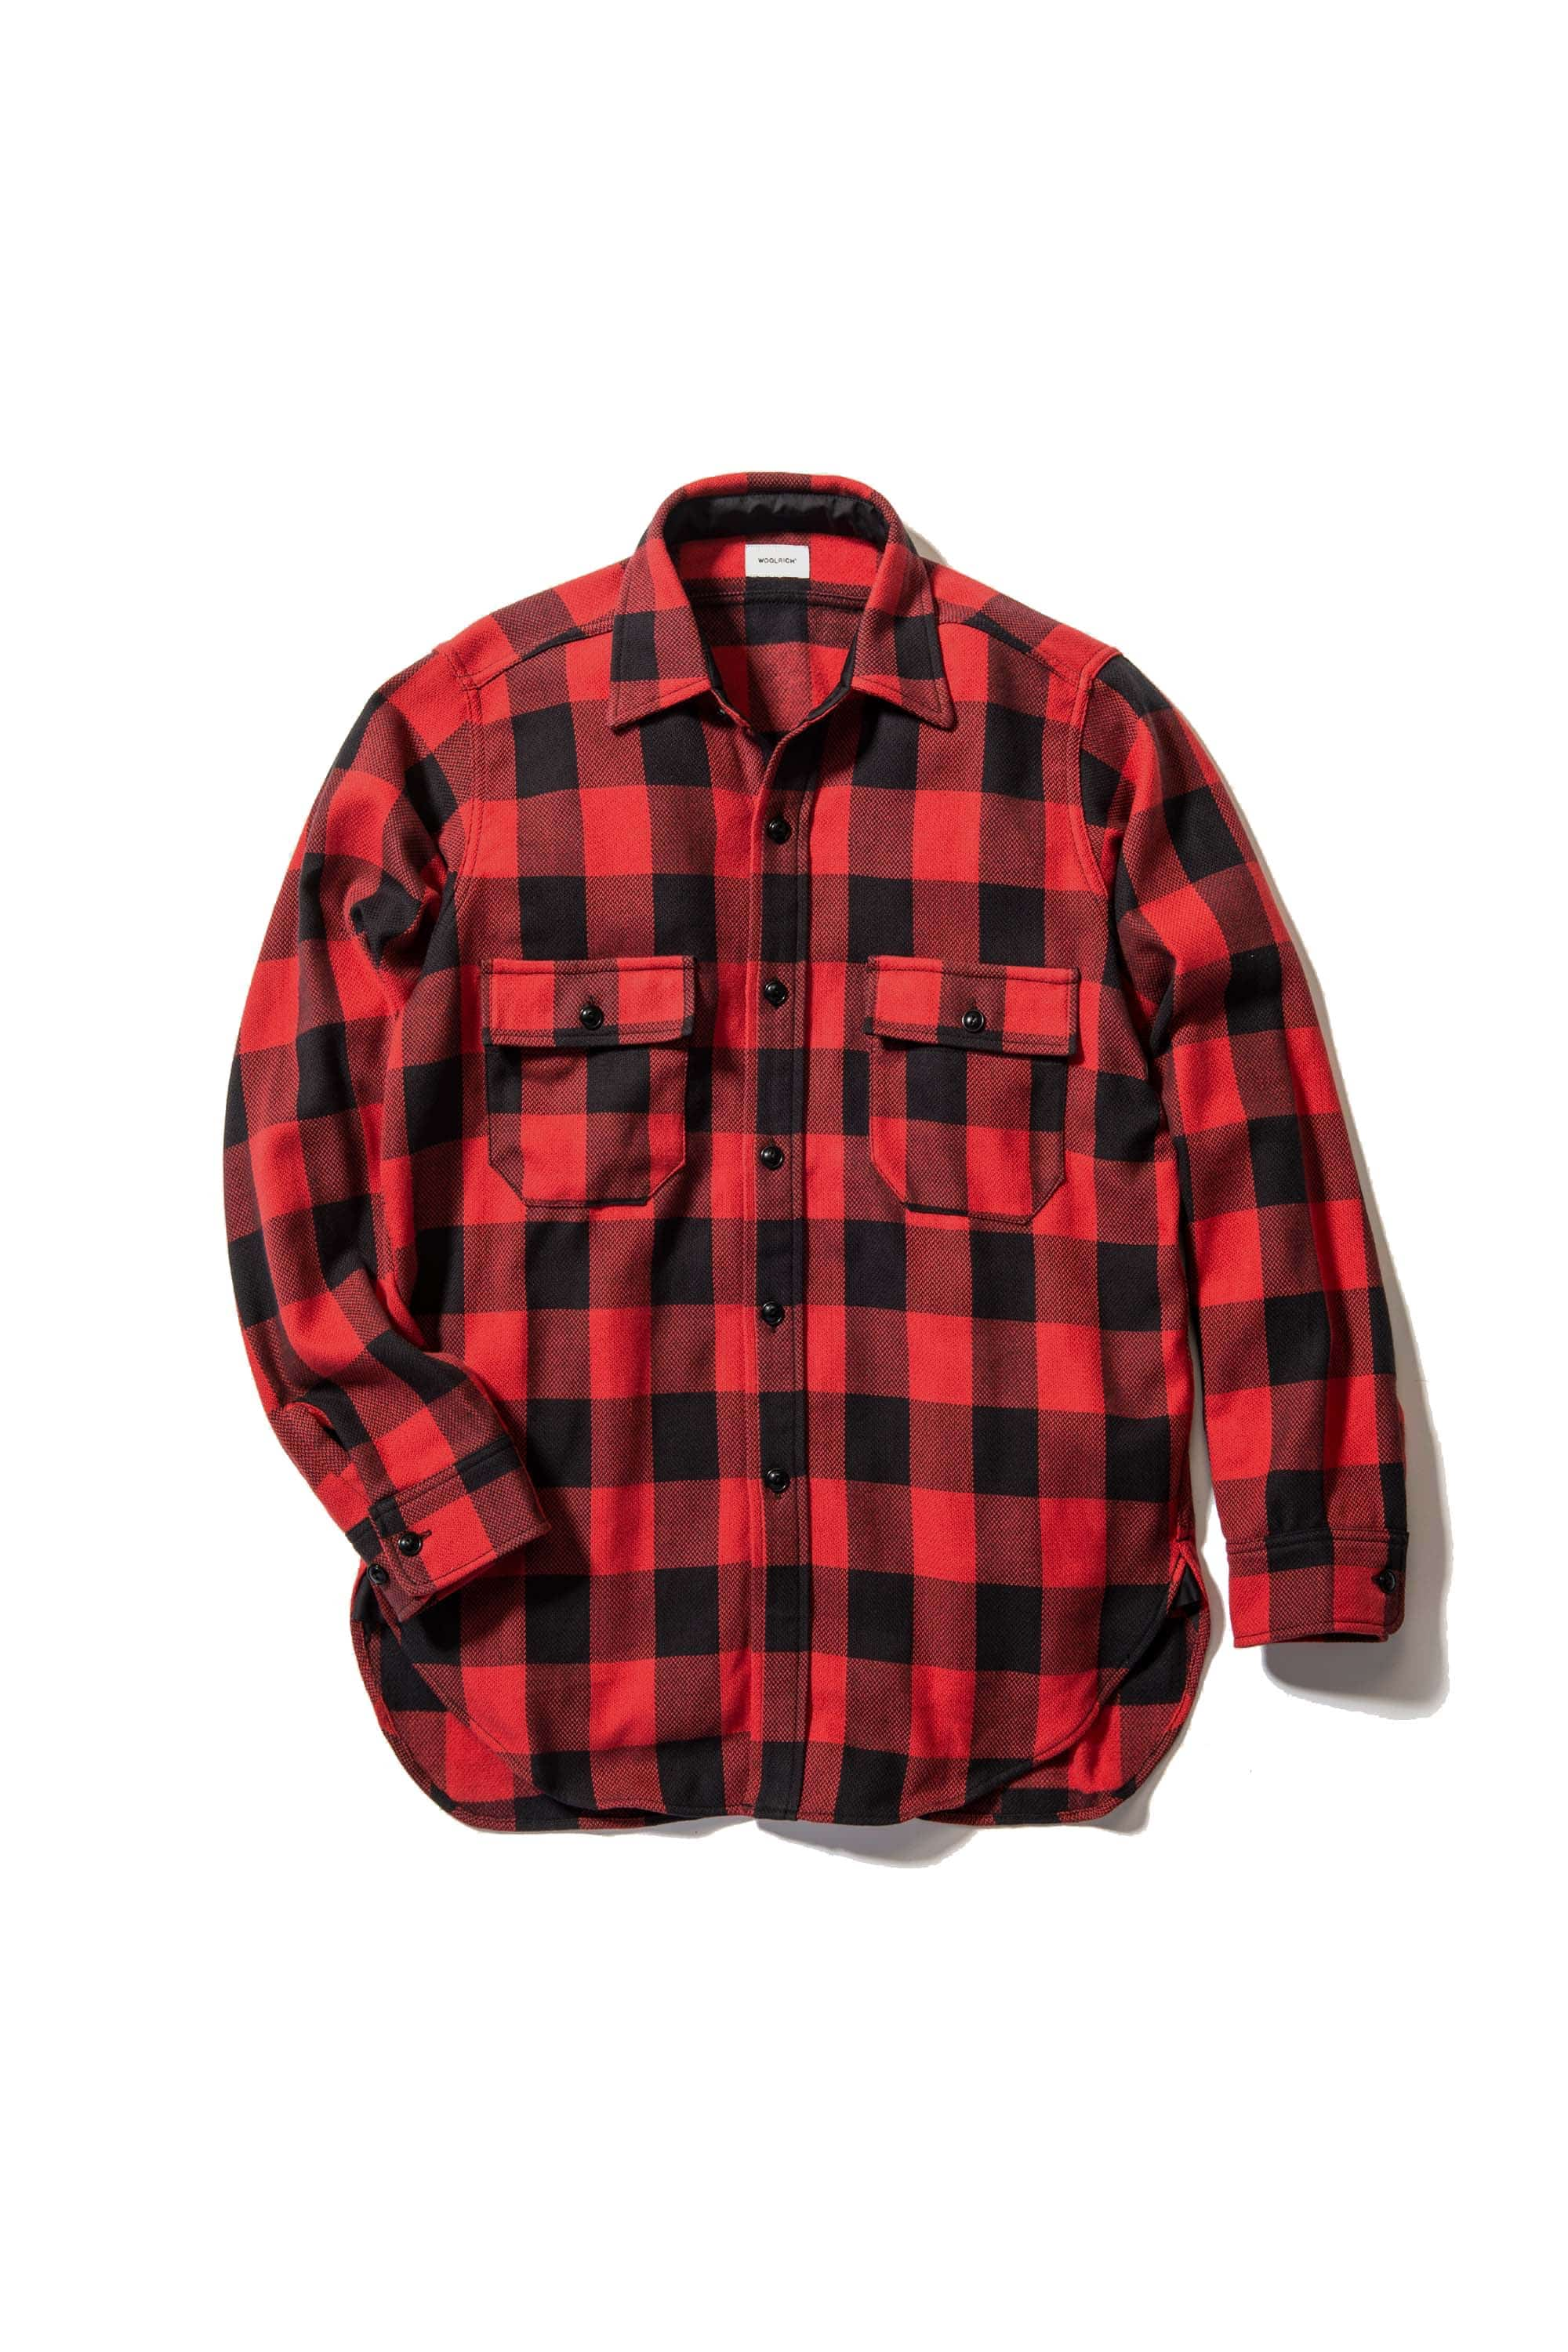 L/S AUTHENTIC FLANNEL SHIRT